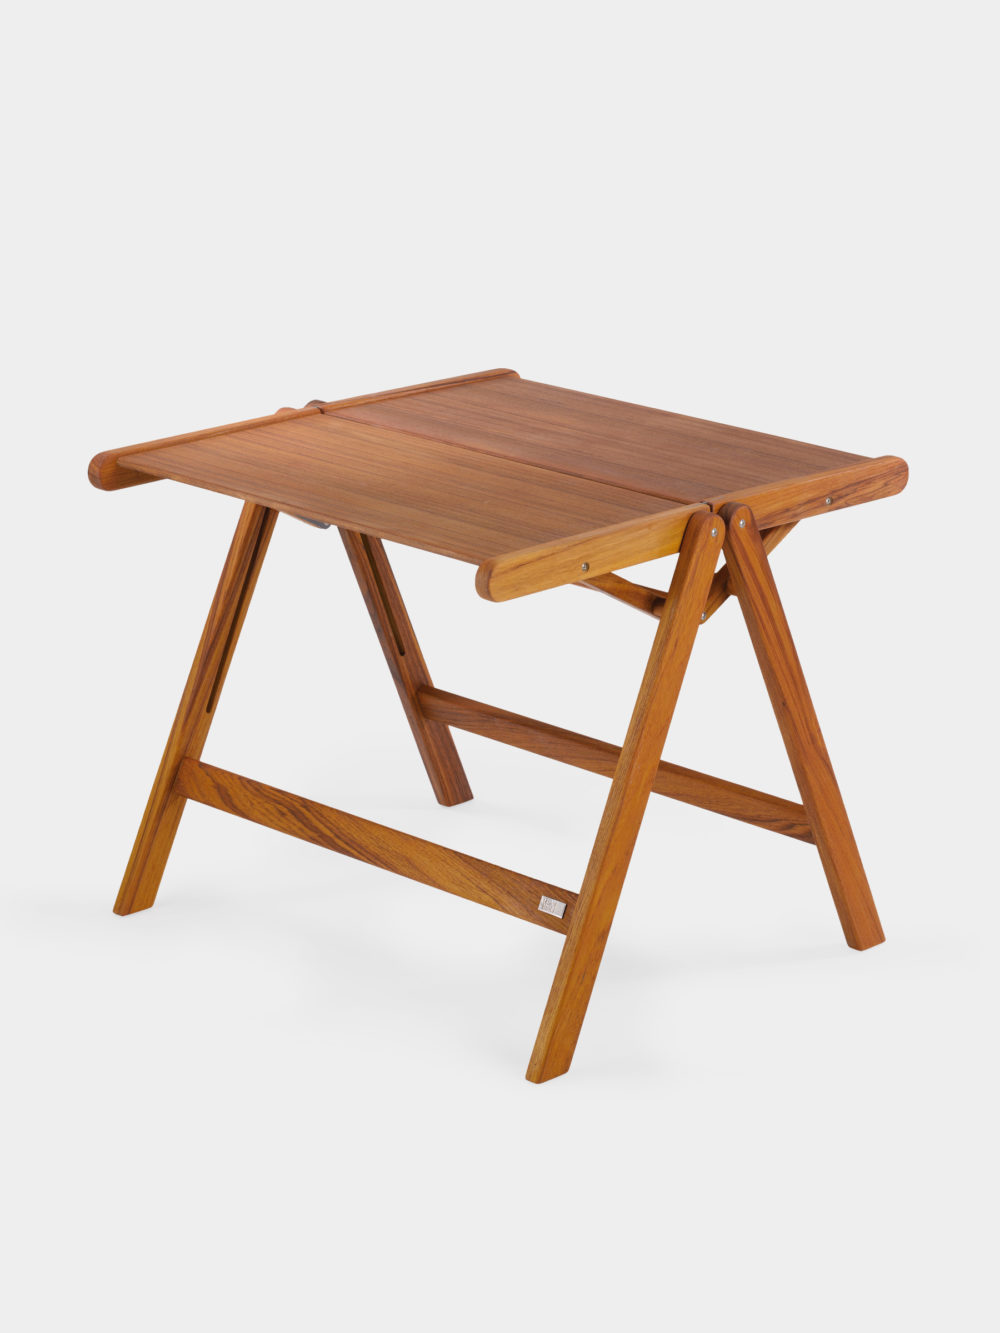 Rex_Kralj_coffee_table_teak